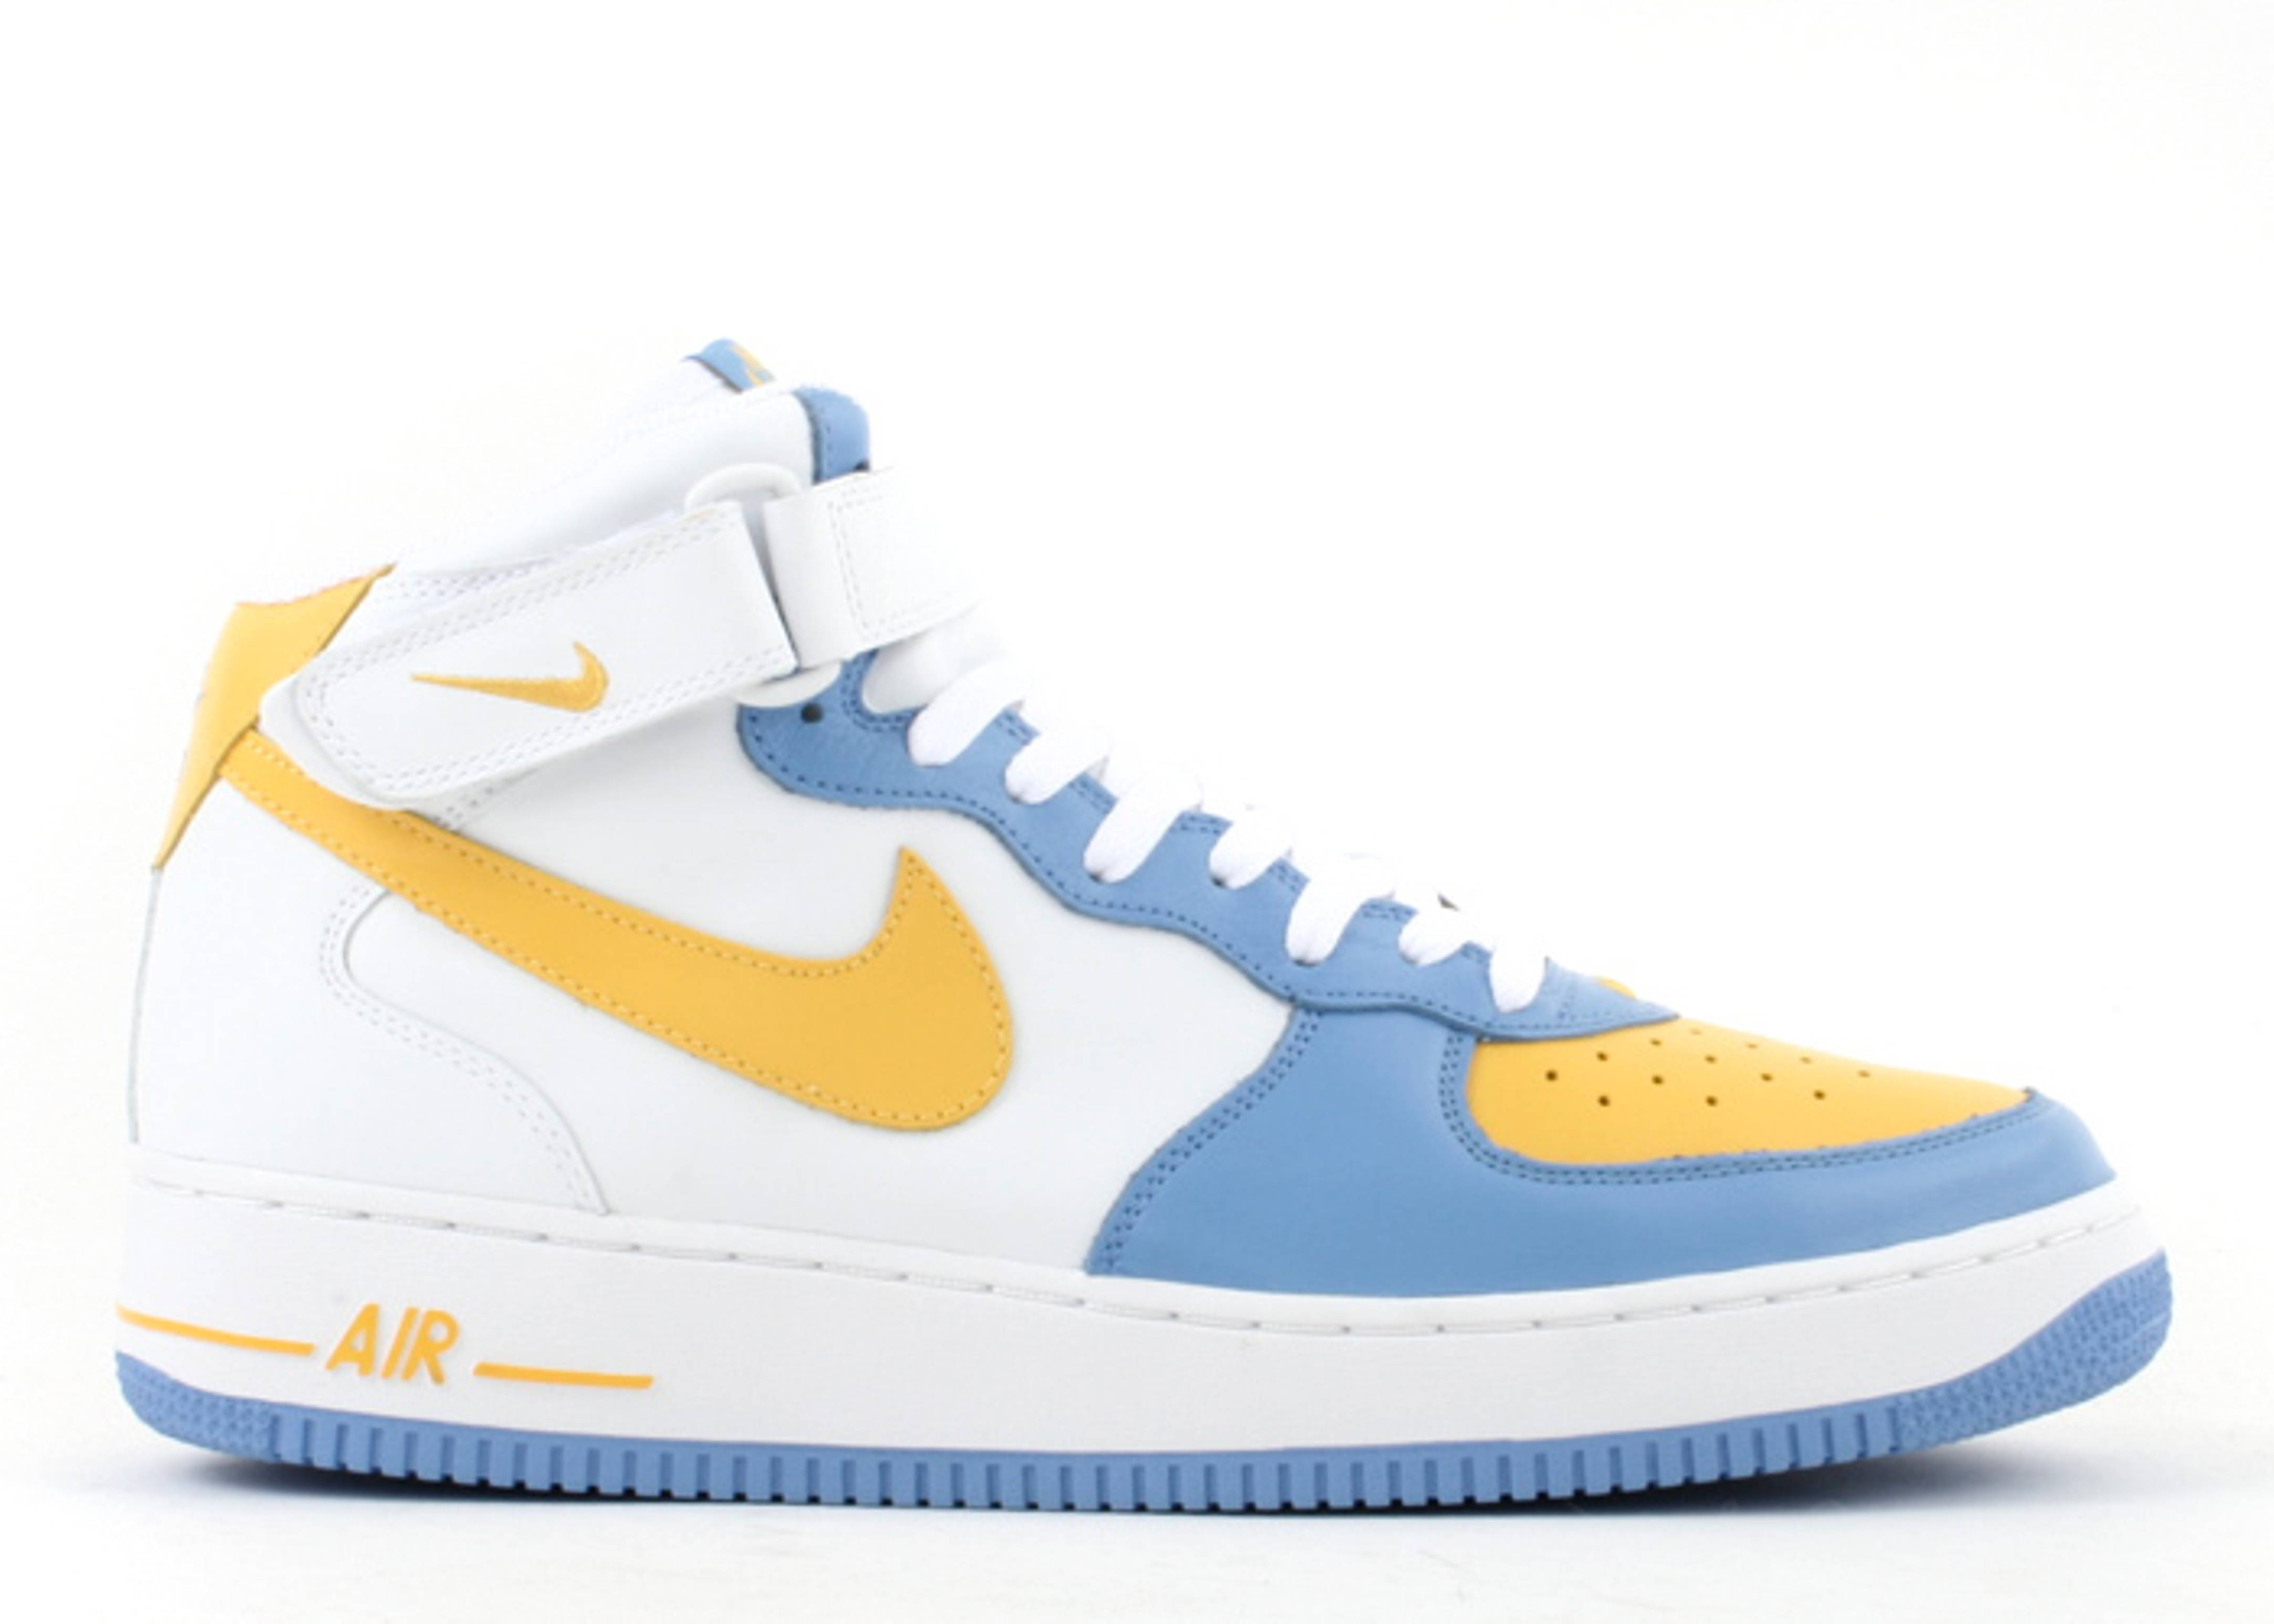 promo code 9c51d 717e8 Air Force 1 Mid - Nike - 306352 172 - white baby blue yellow   Flight Club